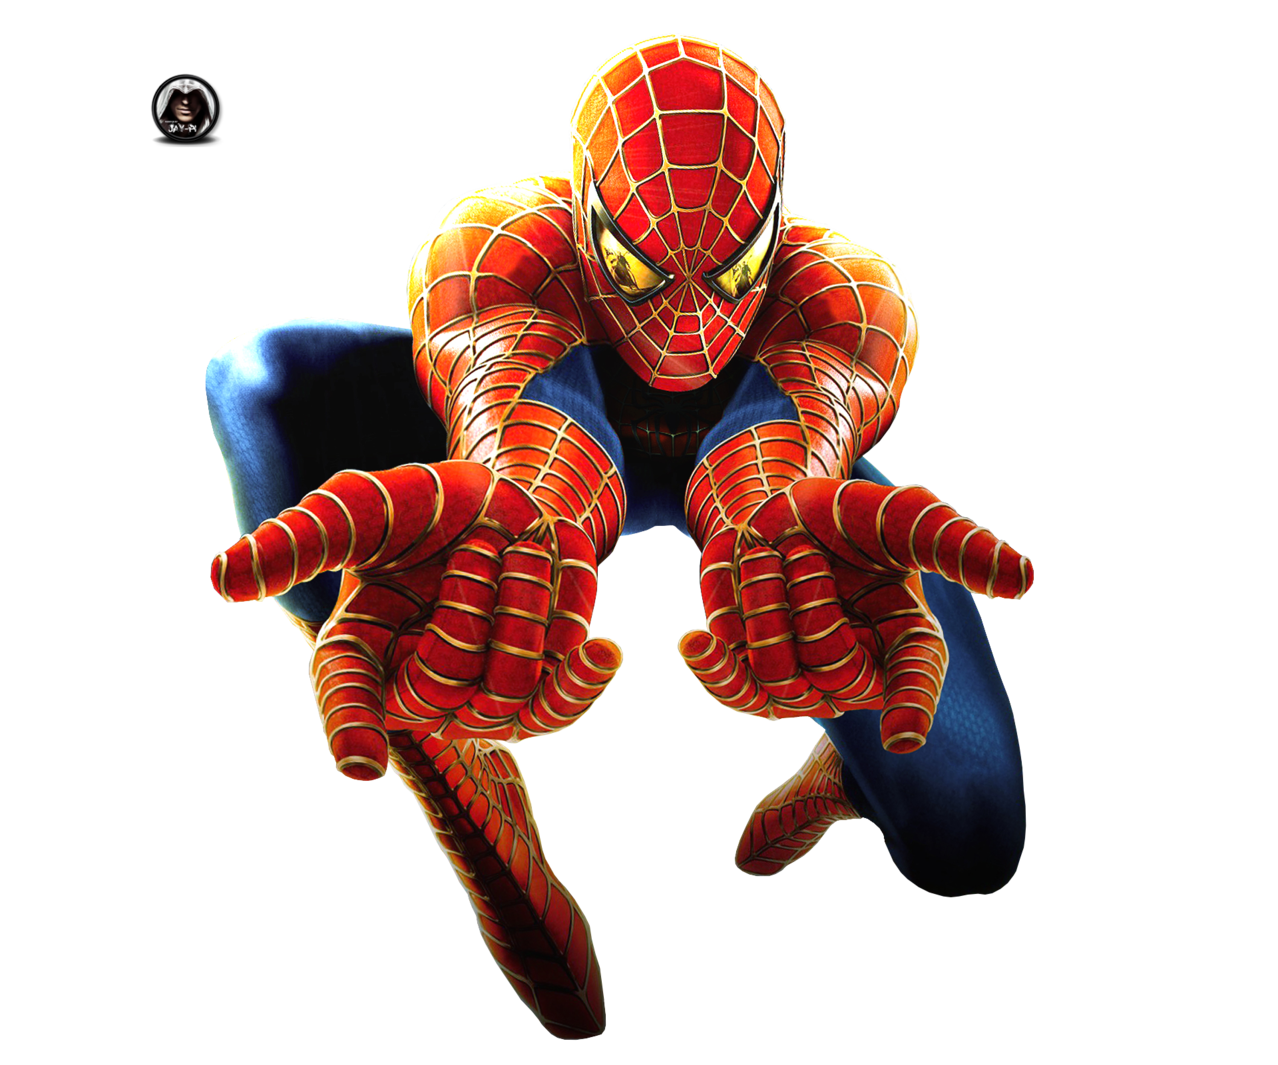 Imageen forum problem loading png file - Image spiderman ...